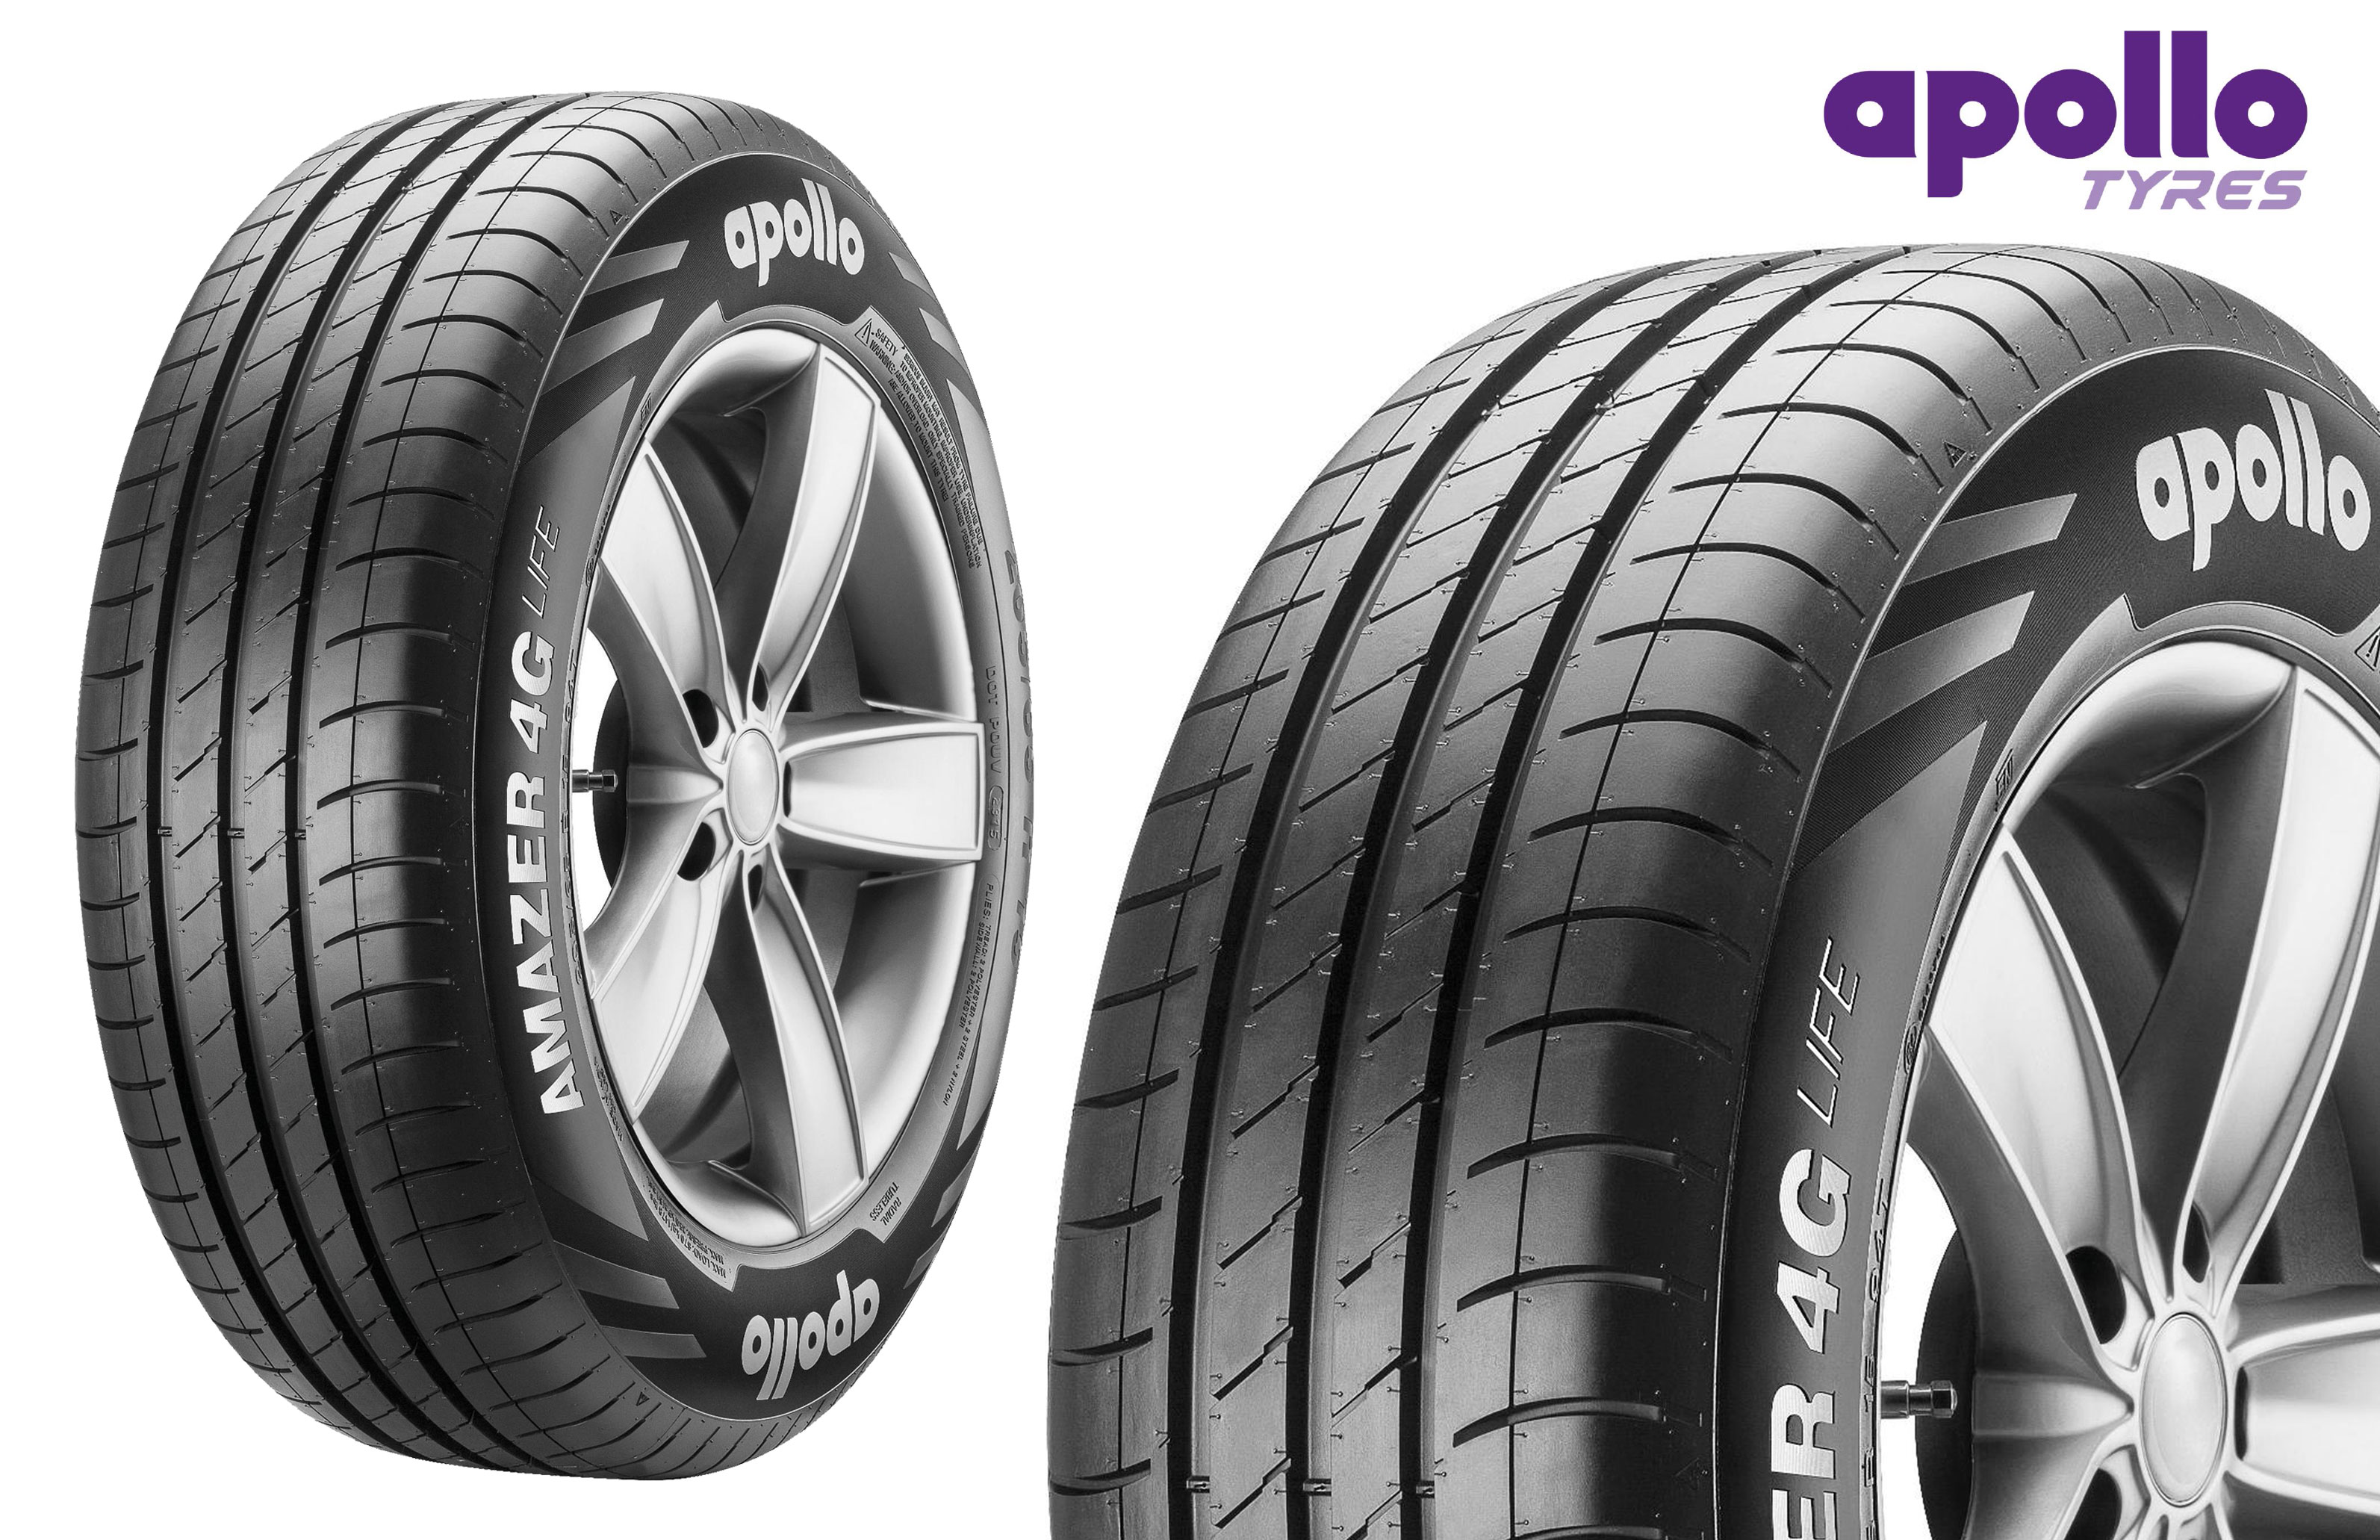 Apollo Tyres Emerges as Top Brand in JD Power Survey